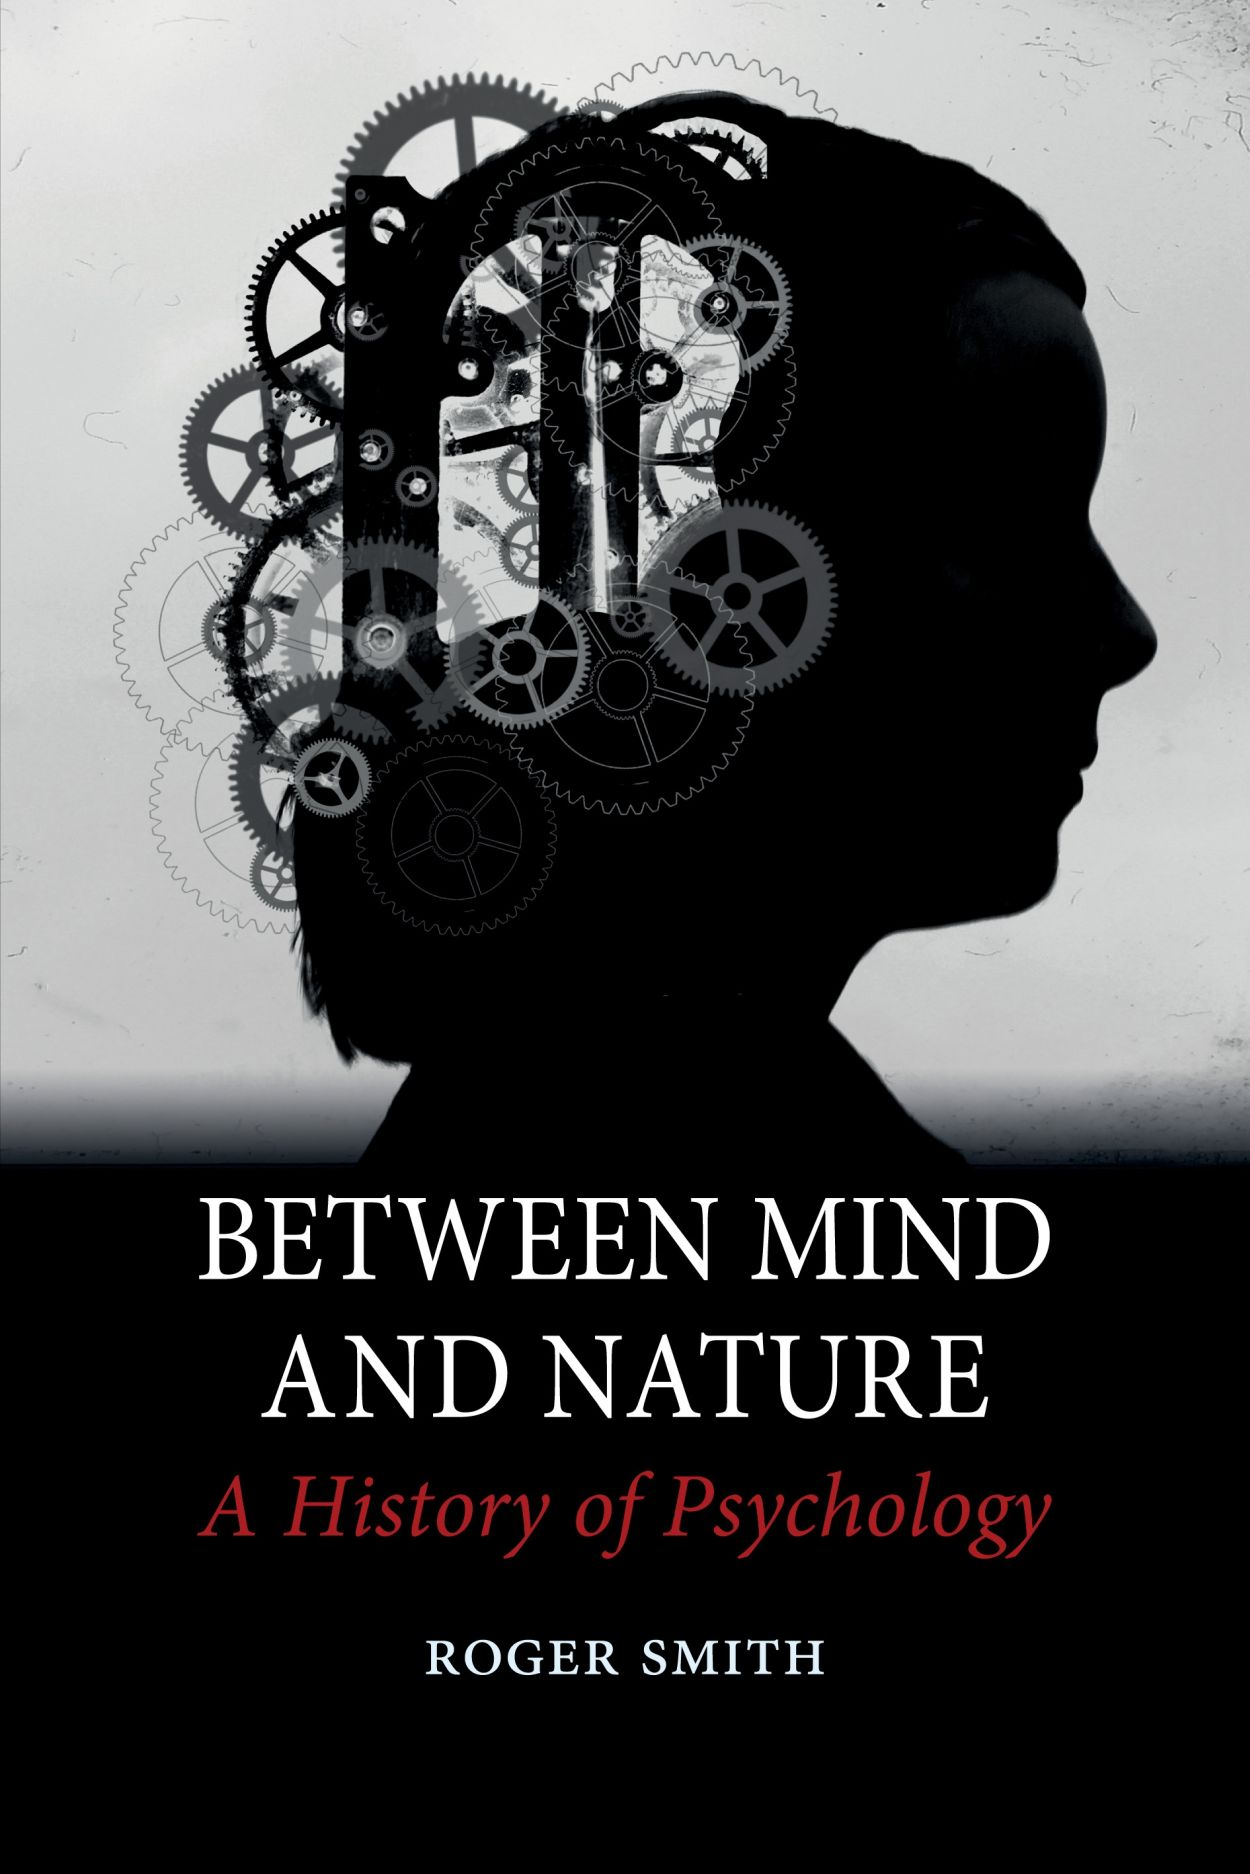 Between Mind and Nature: A History of Psychology